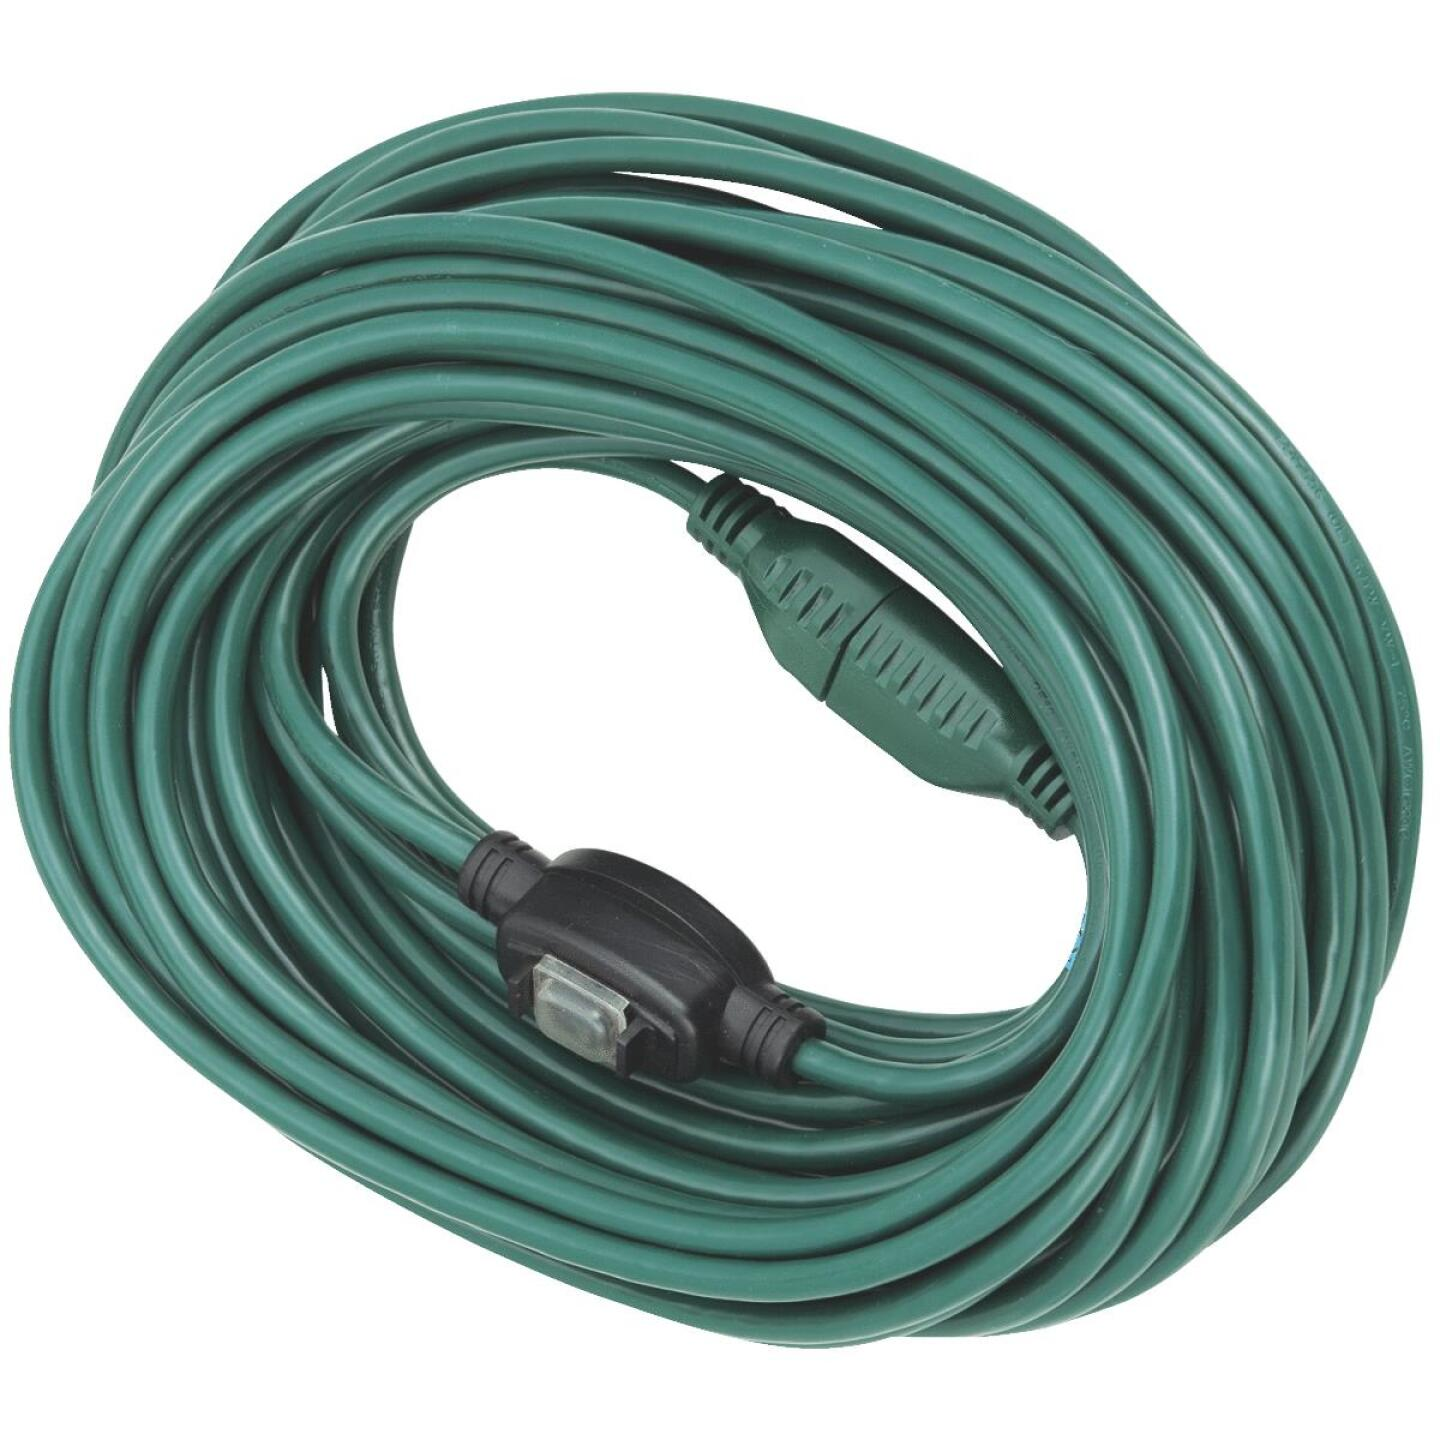 Do it 70 Ft. 16/3 Landscape Extension Cord with Powerblock Image 1